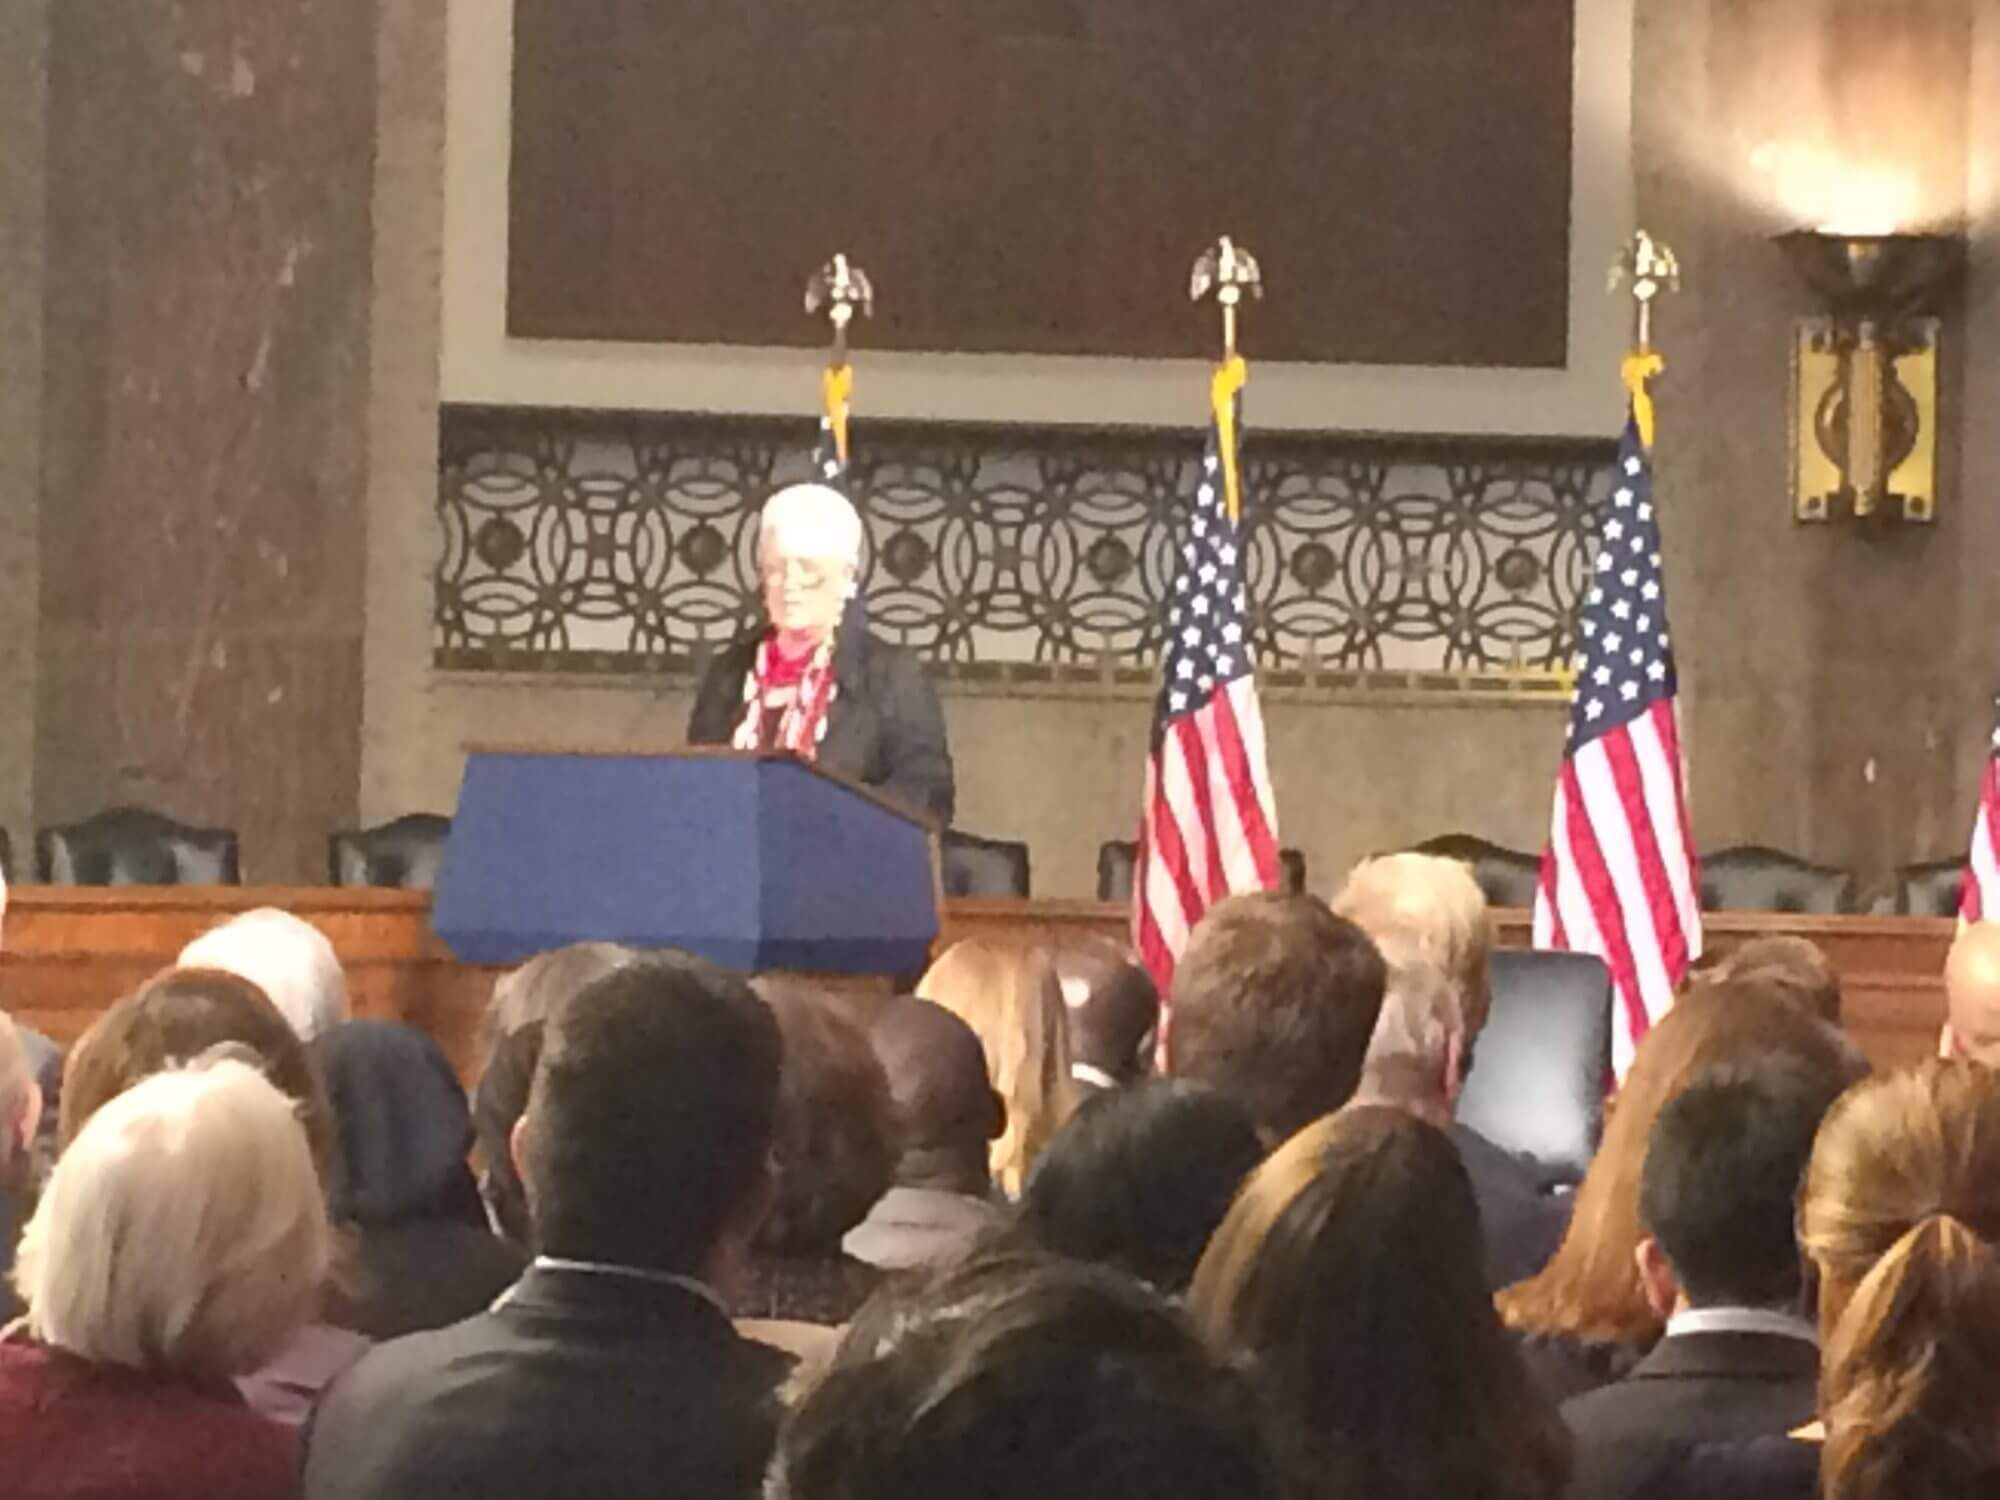 USAID head Gayle Smith urges patience in global crises